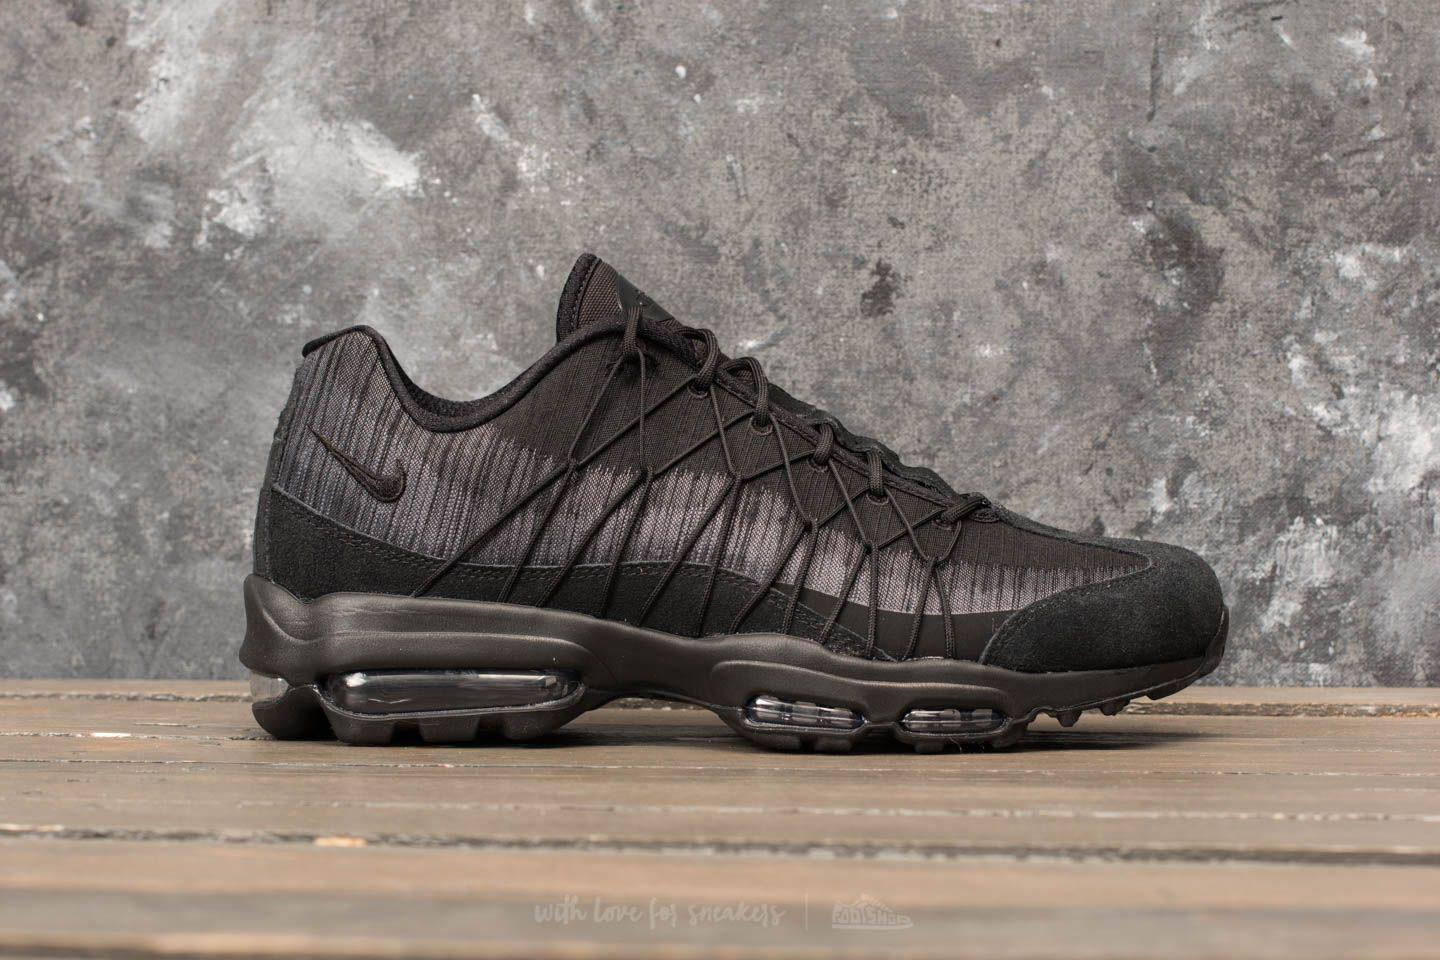 Lyst Ultra Nike Air Max 95 Ultra Lyst Jacquard Black Anthracite cool Grey in 66a721